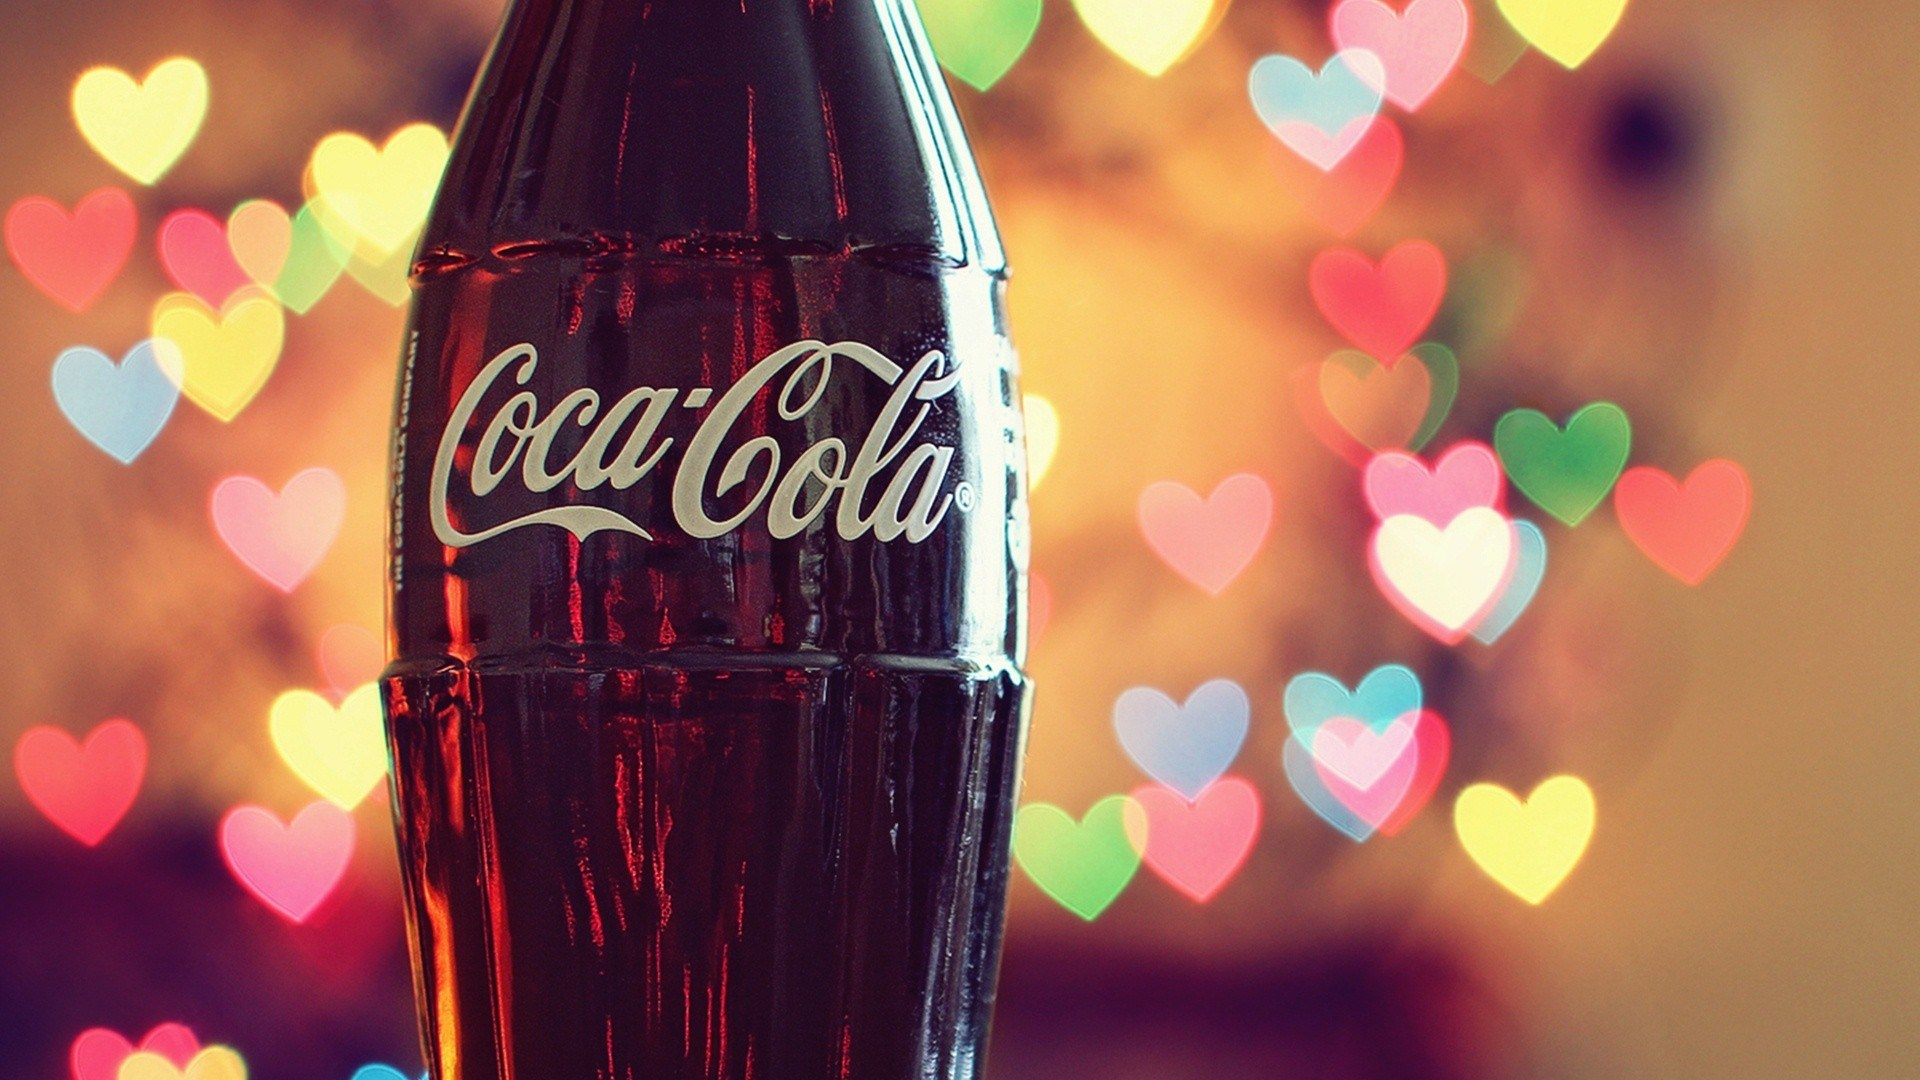 Love Coca-Cola Hearts Lights Photo